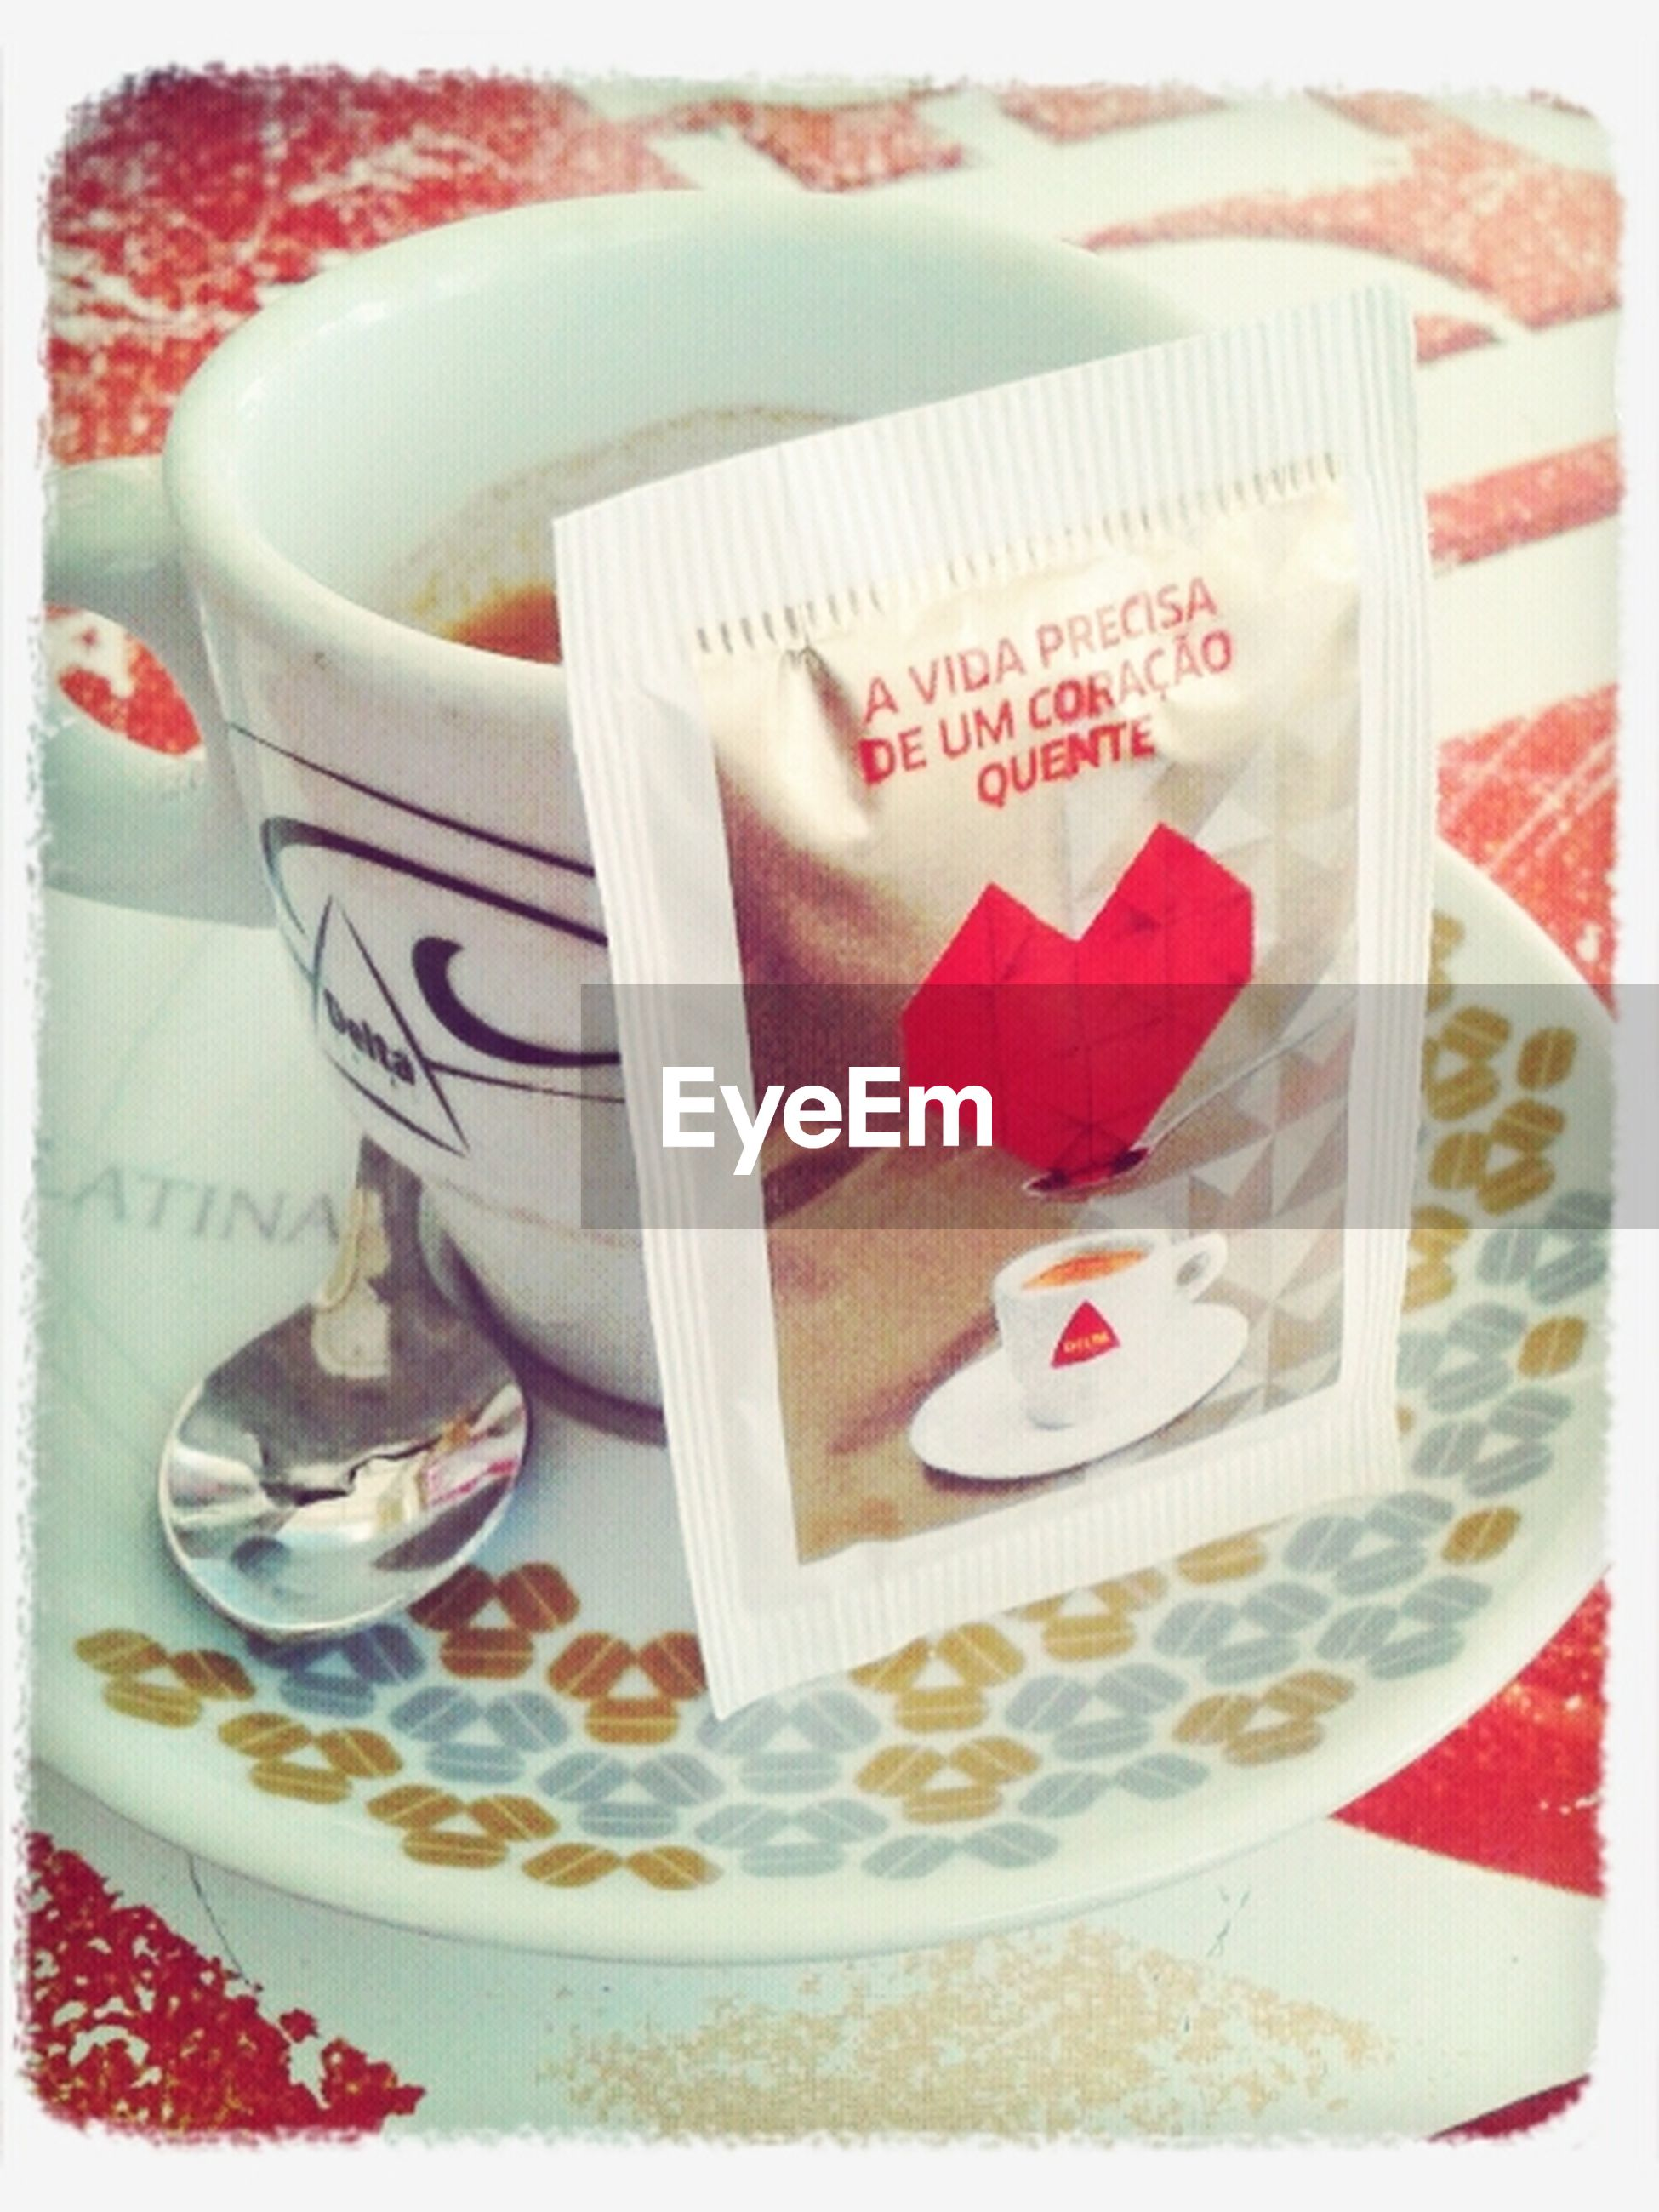 transfer print, indoors, auto post production filter, text, western script, food and drink, still life, communication, red, table, high angle view, close-up, sweet food, plate, heart shape, dessert, creativity, coffee cup, cake, food